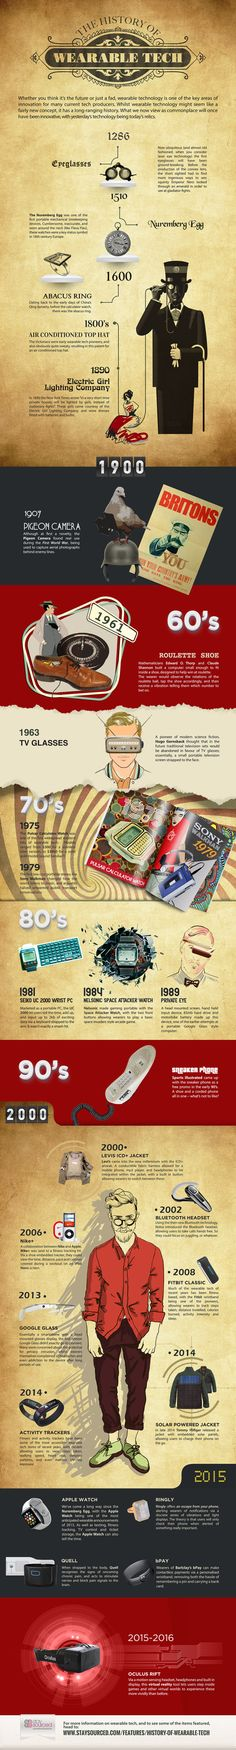 The Evolution Of Wearable Technology 1286 – 2015 [INFOGRAPHIC]